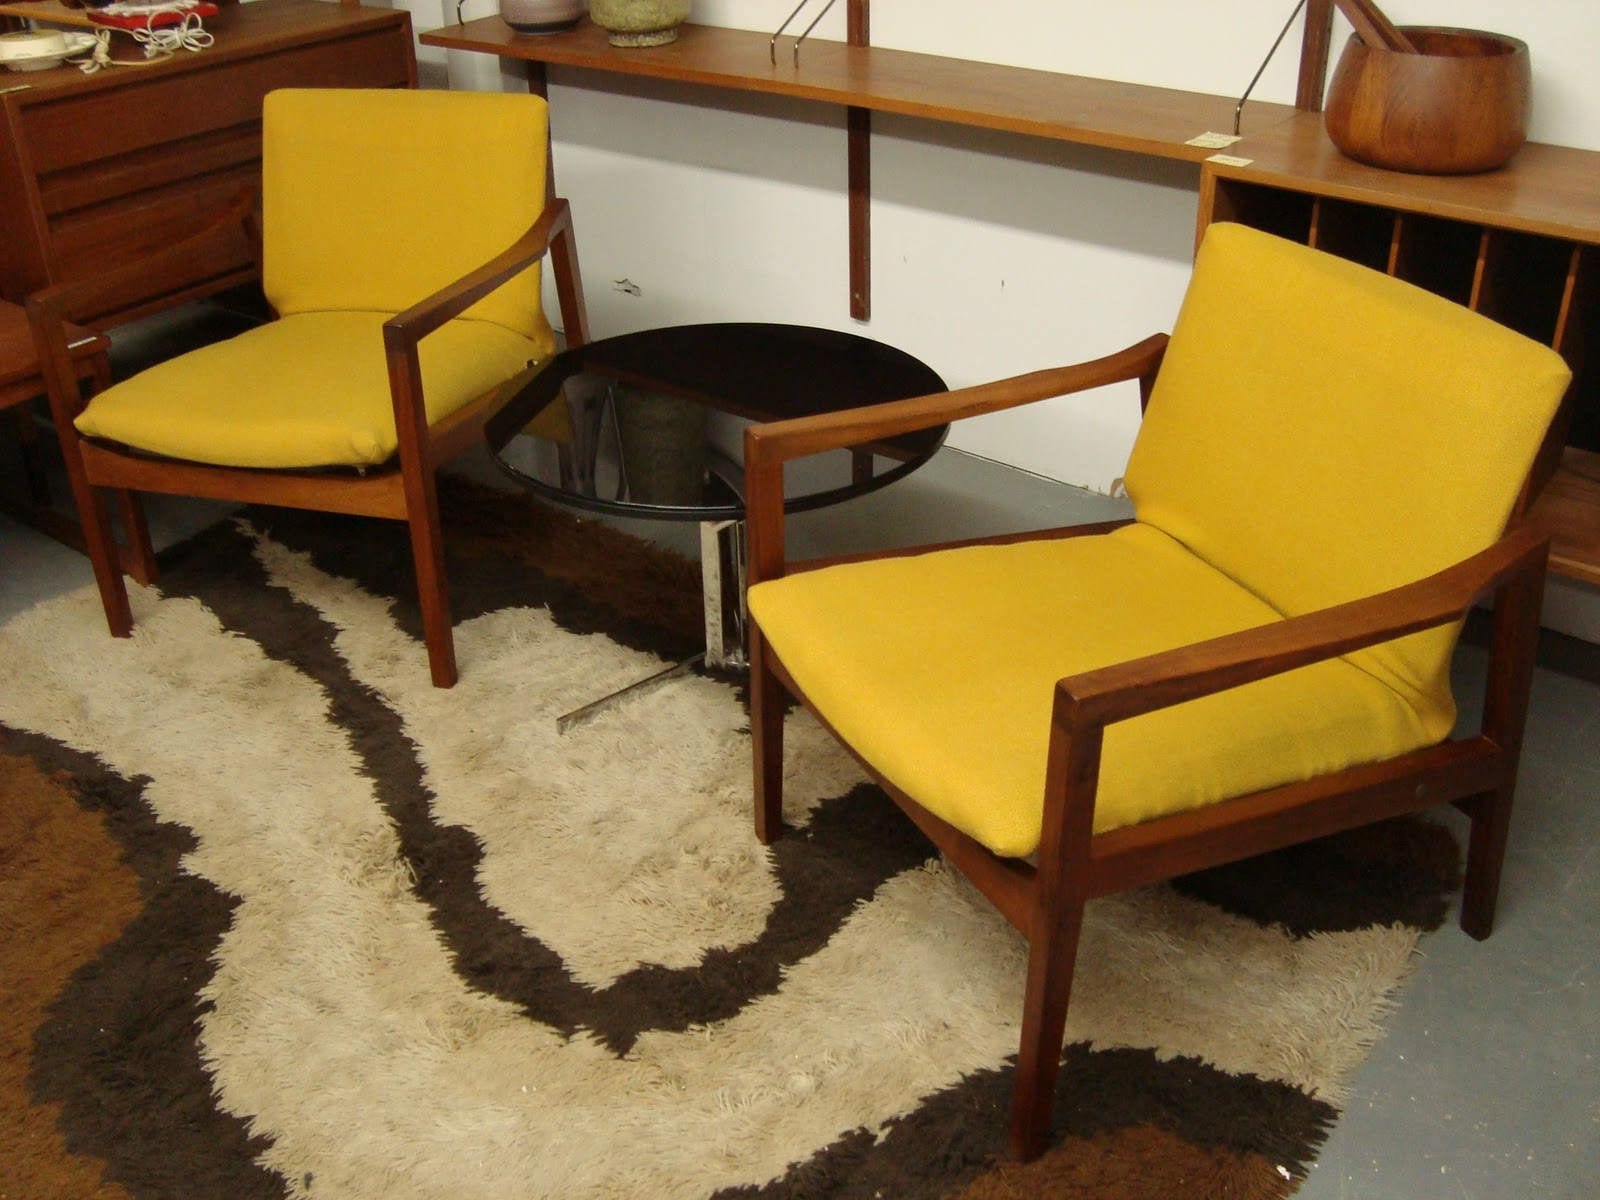 Funky Furniture Finds Of The Month October 2010